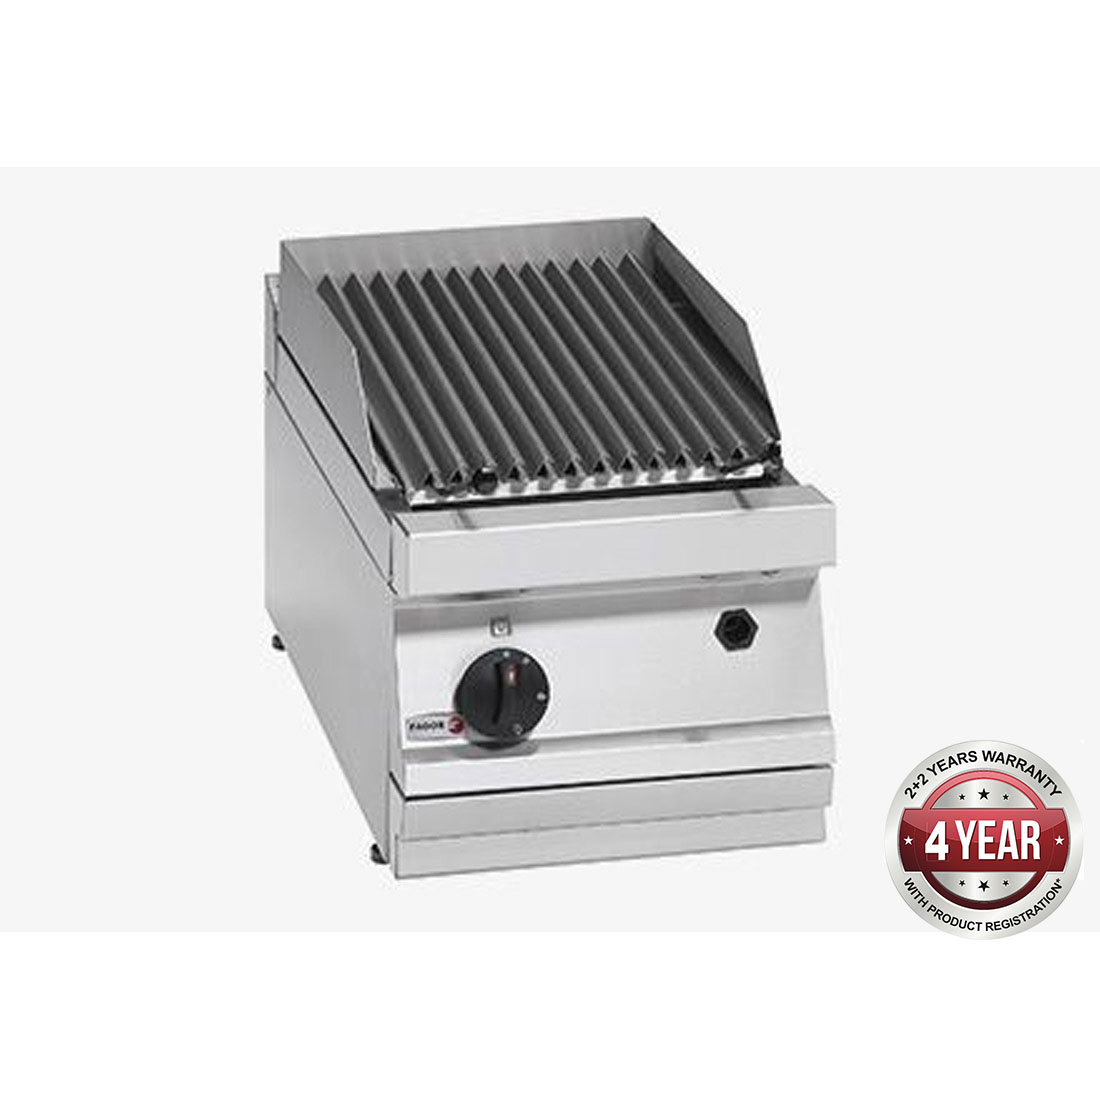 Fagor 700 series - Gas charcoal 1 grid grill BG7-05